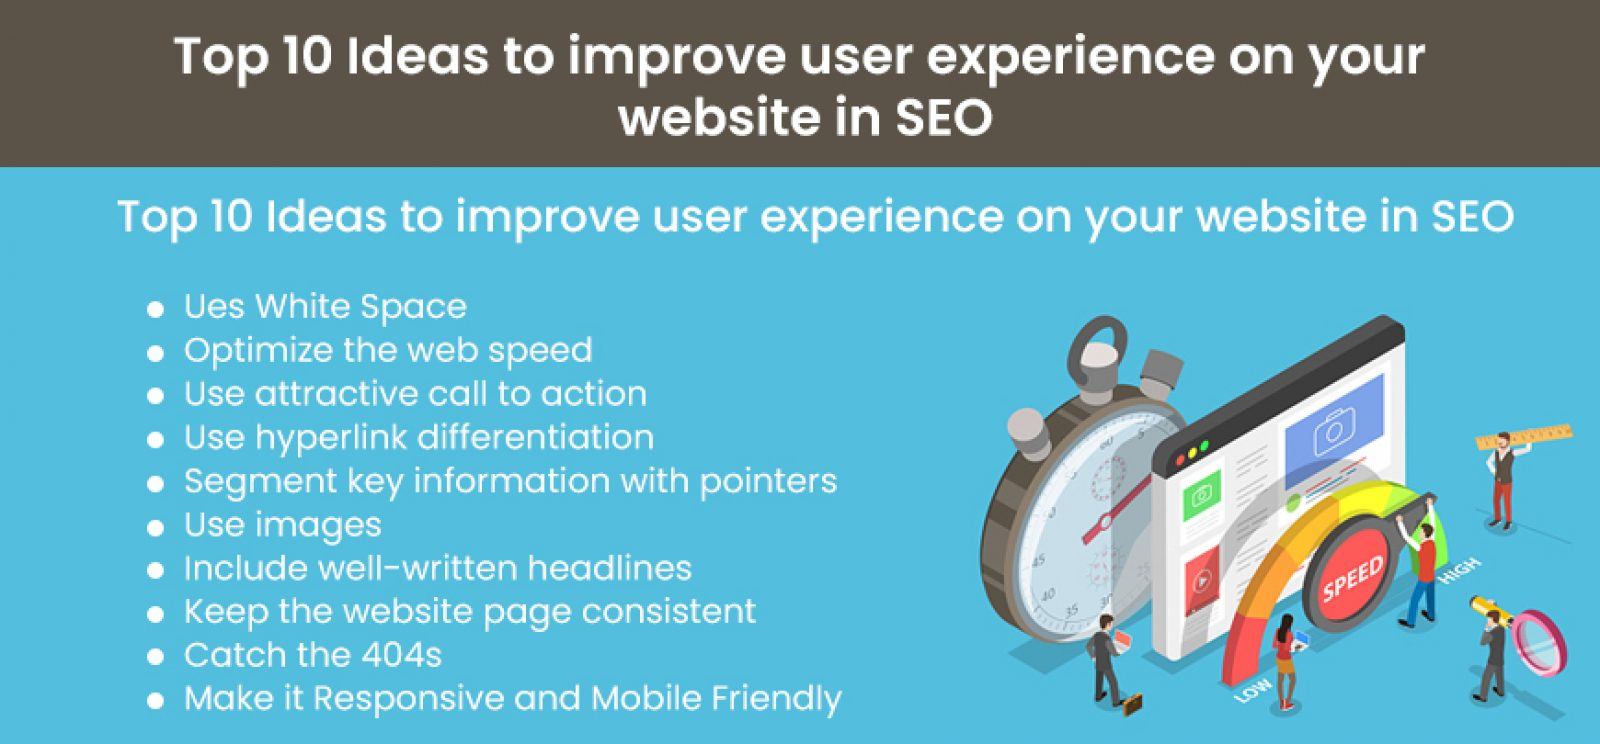 Top 10 Ideas to improve user experience on your website in SEO